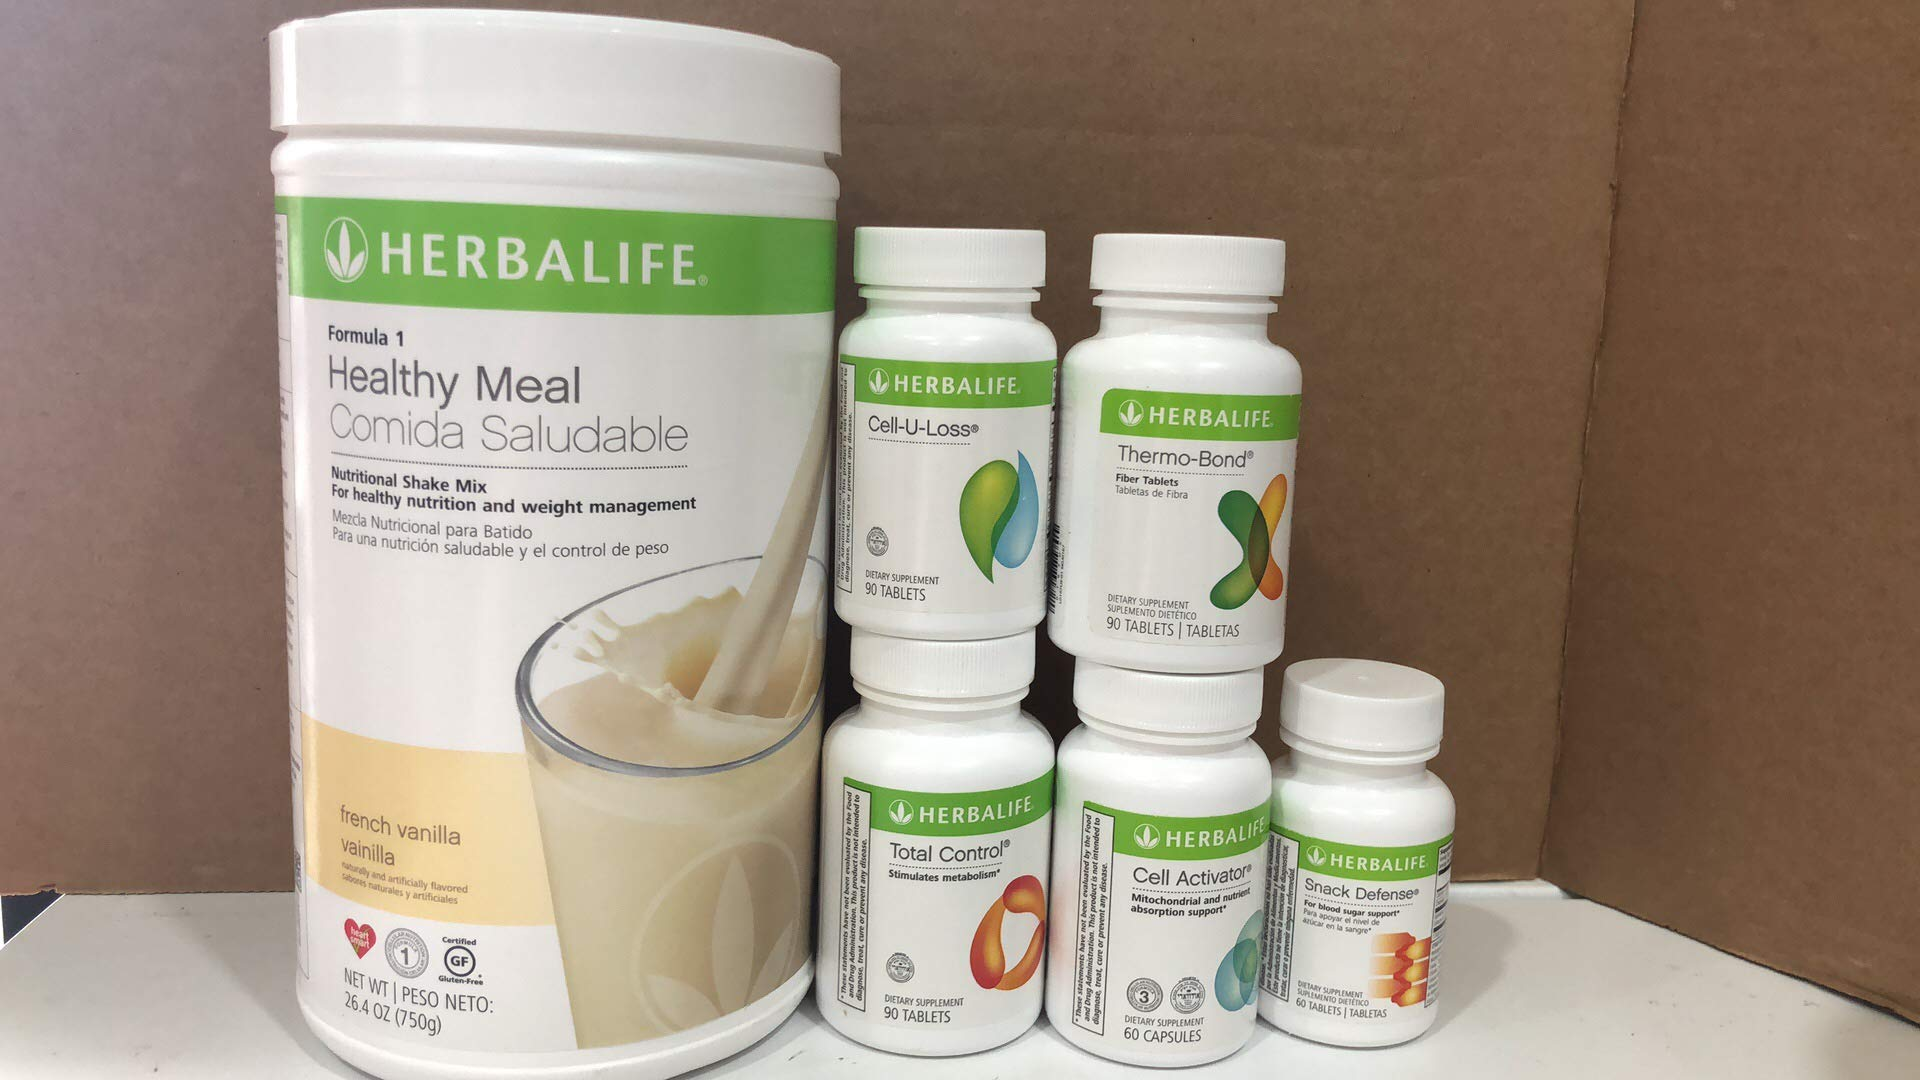 herbalife Healthy Meal Replacement, and Weight Loss Combination(French Vanilla 750g,Total Control,Cell-U-Loss,Snack Defense,Thermo-Bond,Formula 3 Cell Activator)